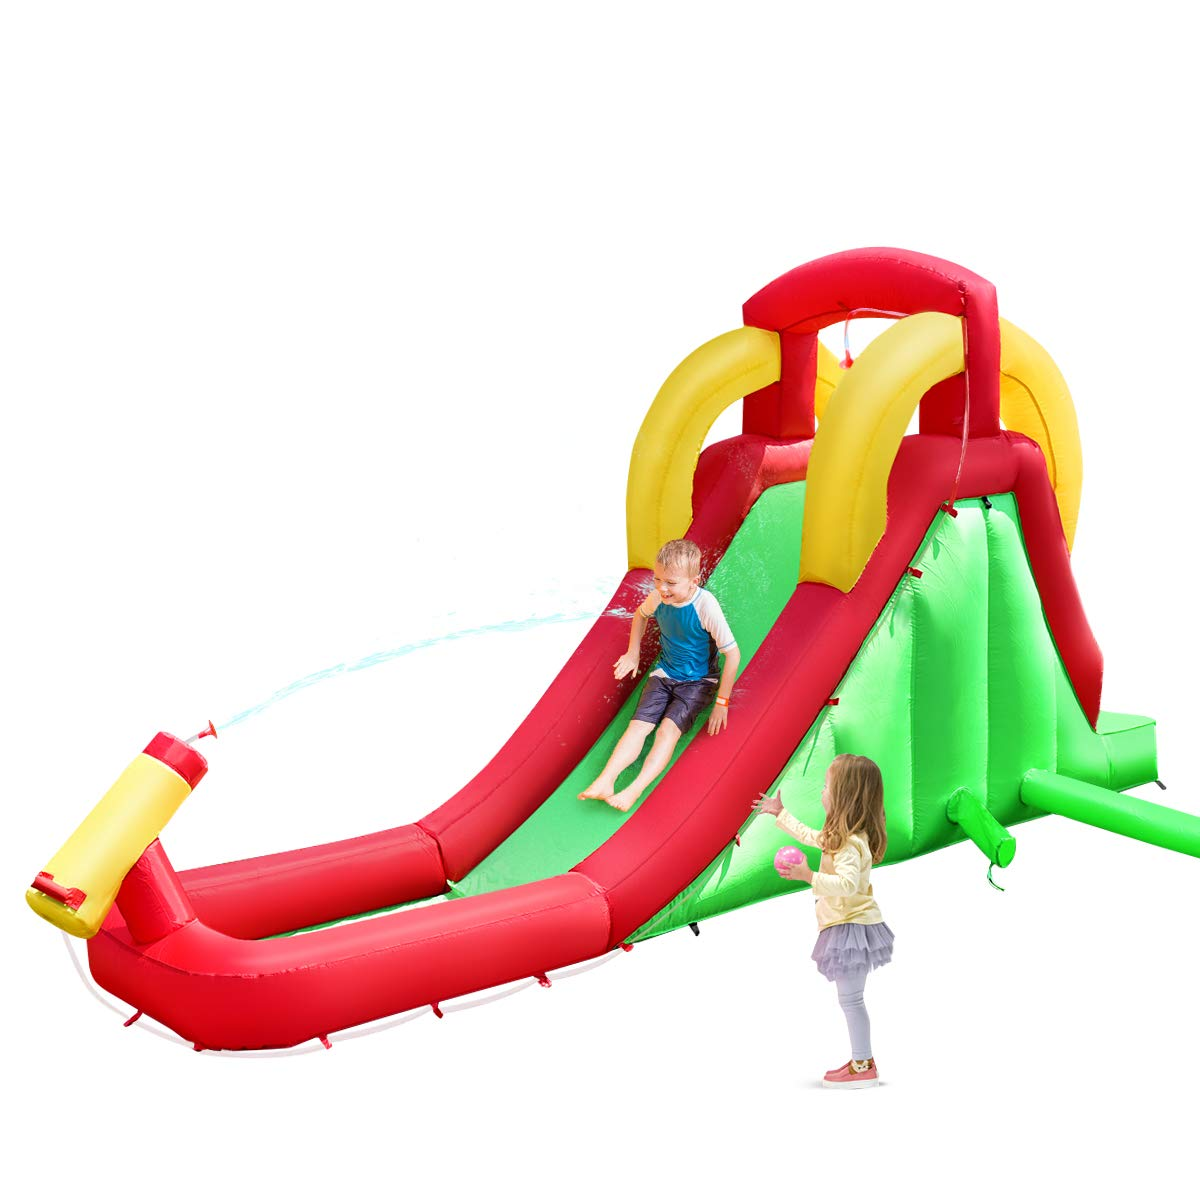 Costzon Inflatable Water Slide, Climb and Long Slide Bouncer w/ Water Cannon for Kids, Including Carry Bag, Repairing Kit, Hose, Without Blower by Costzon